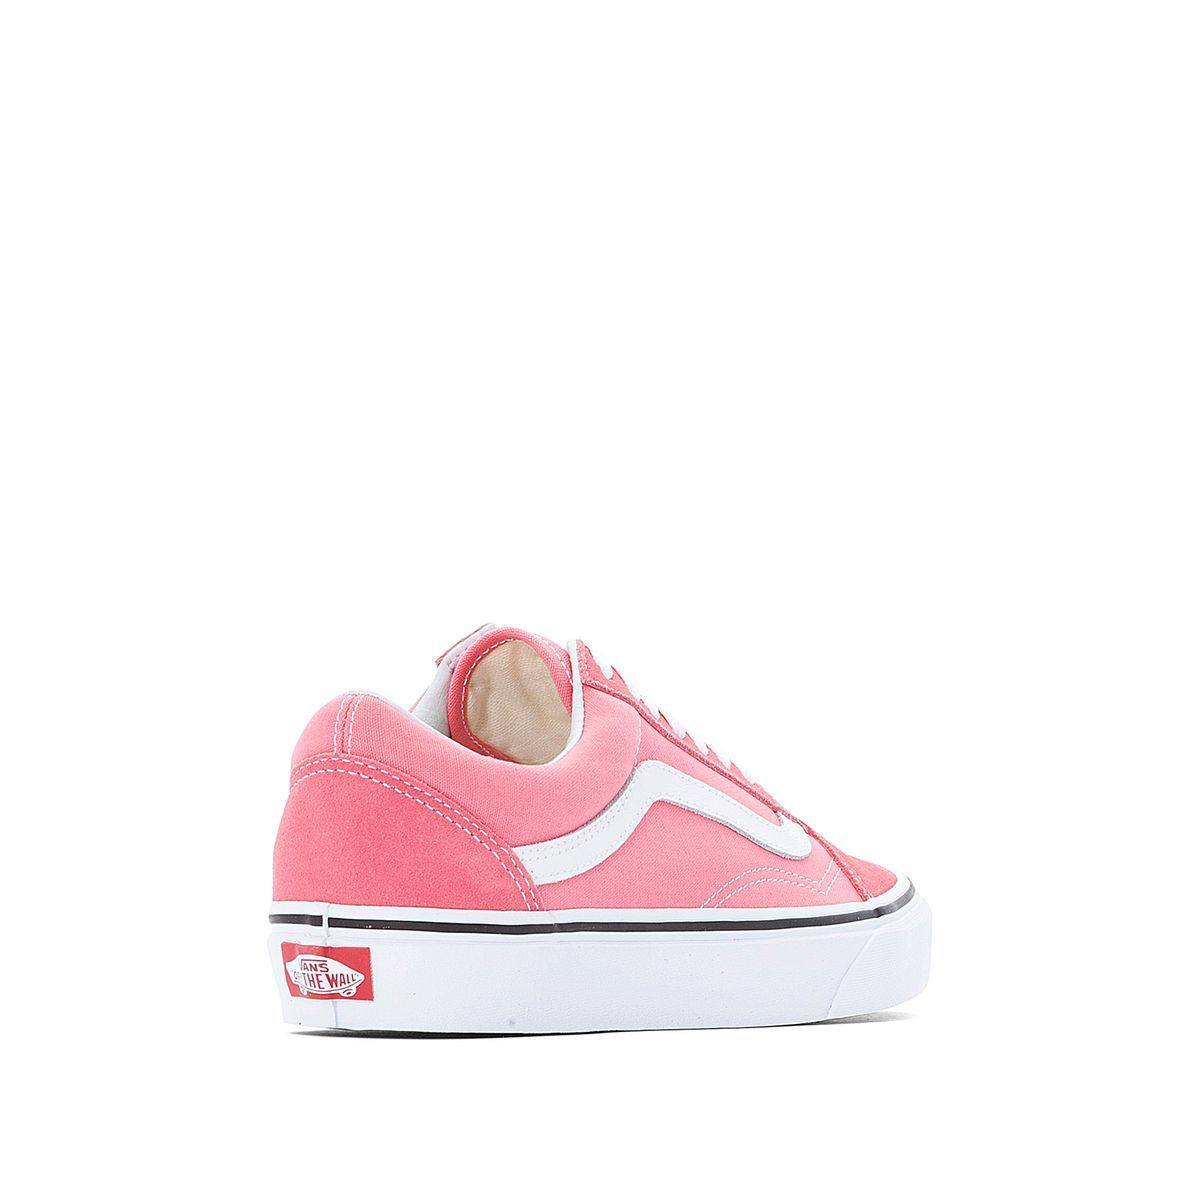 chaussures vans rose 40